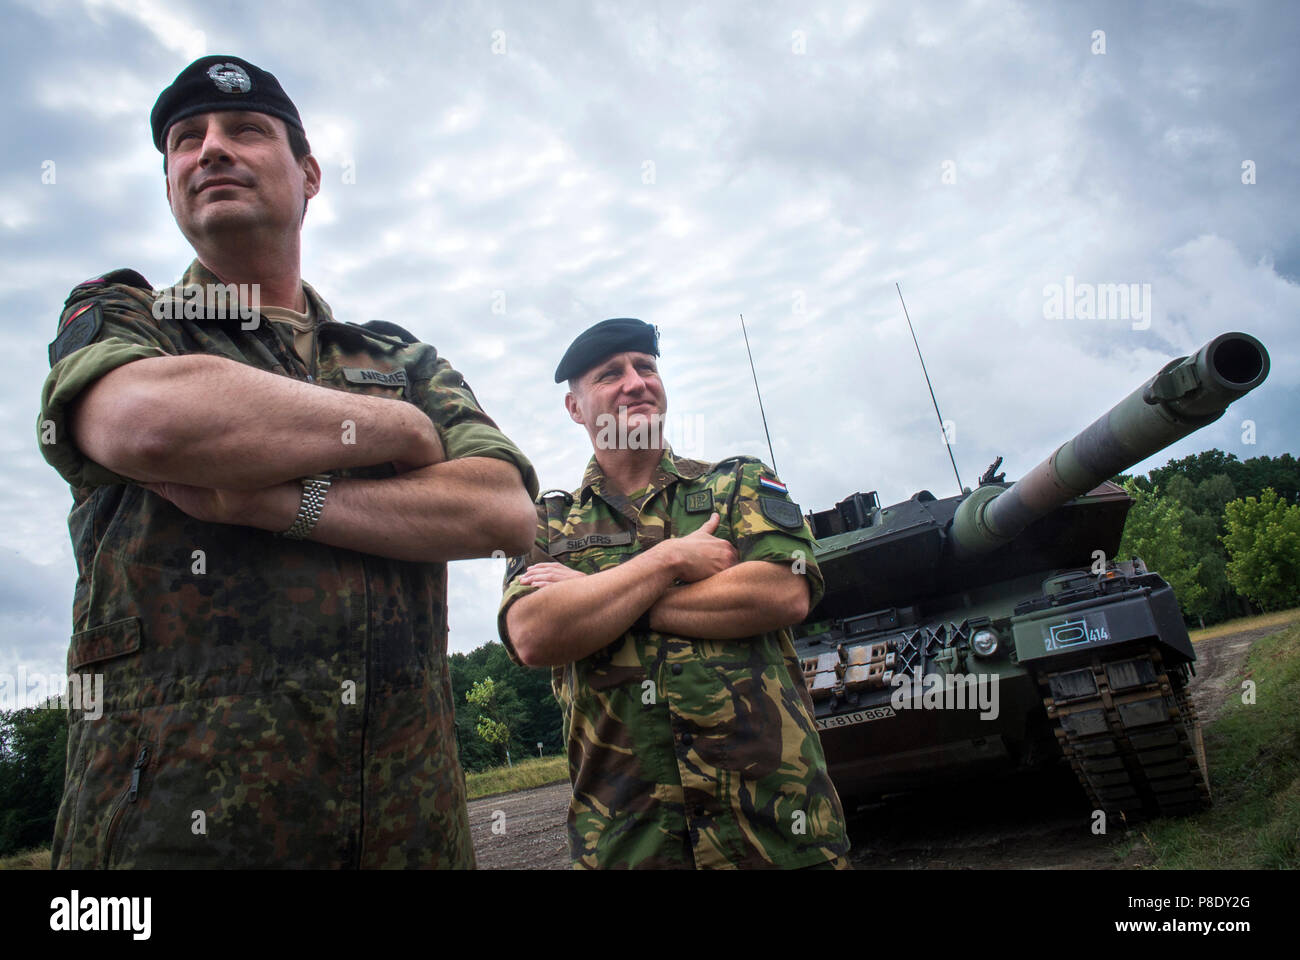 German Lieutenant-Colonel Marco Niemeyer of the Bundeswehr with his second in command  Major Chris Sievers of the Royal Netherlands Army the Landmacht - Stock Image